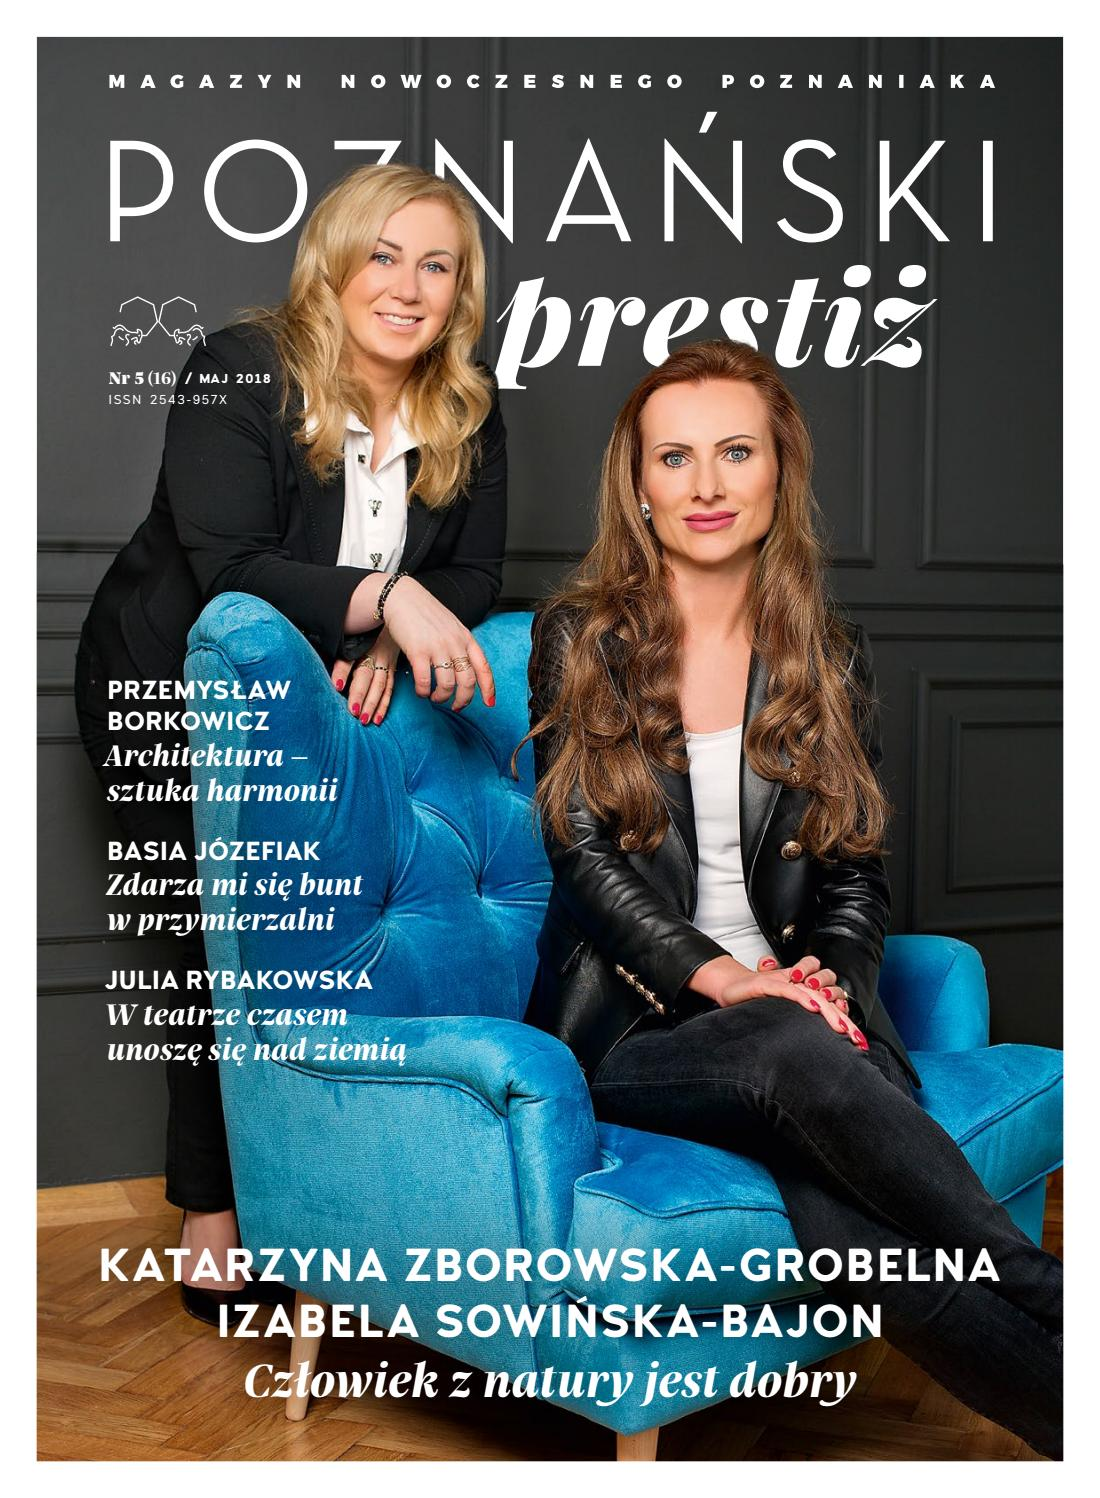 81052b26ab Poznański prestiż maj 2018 by Top Media   Publishing House - issuu